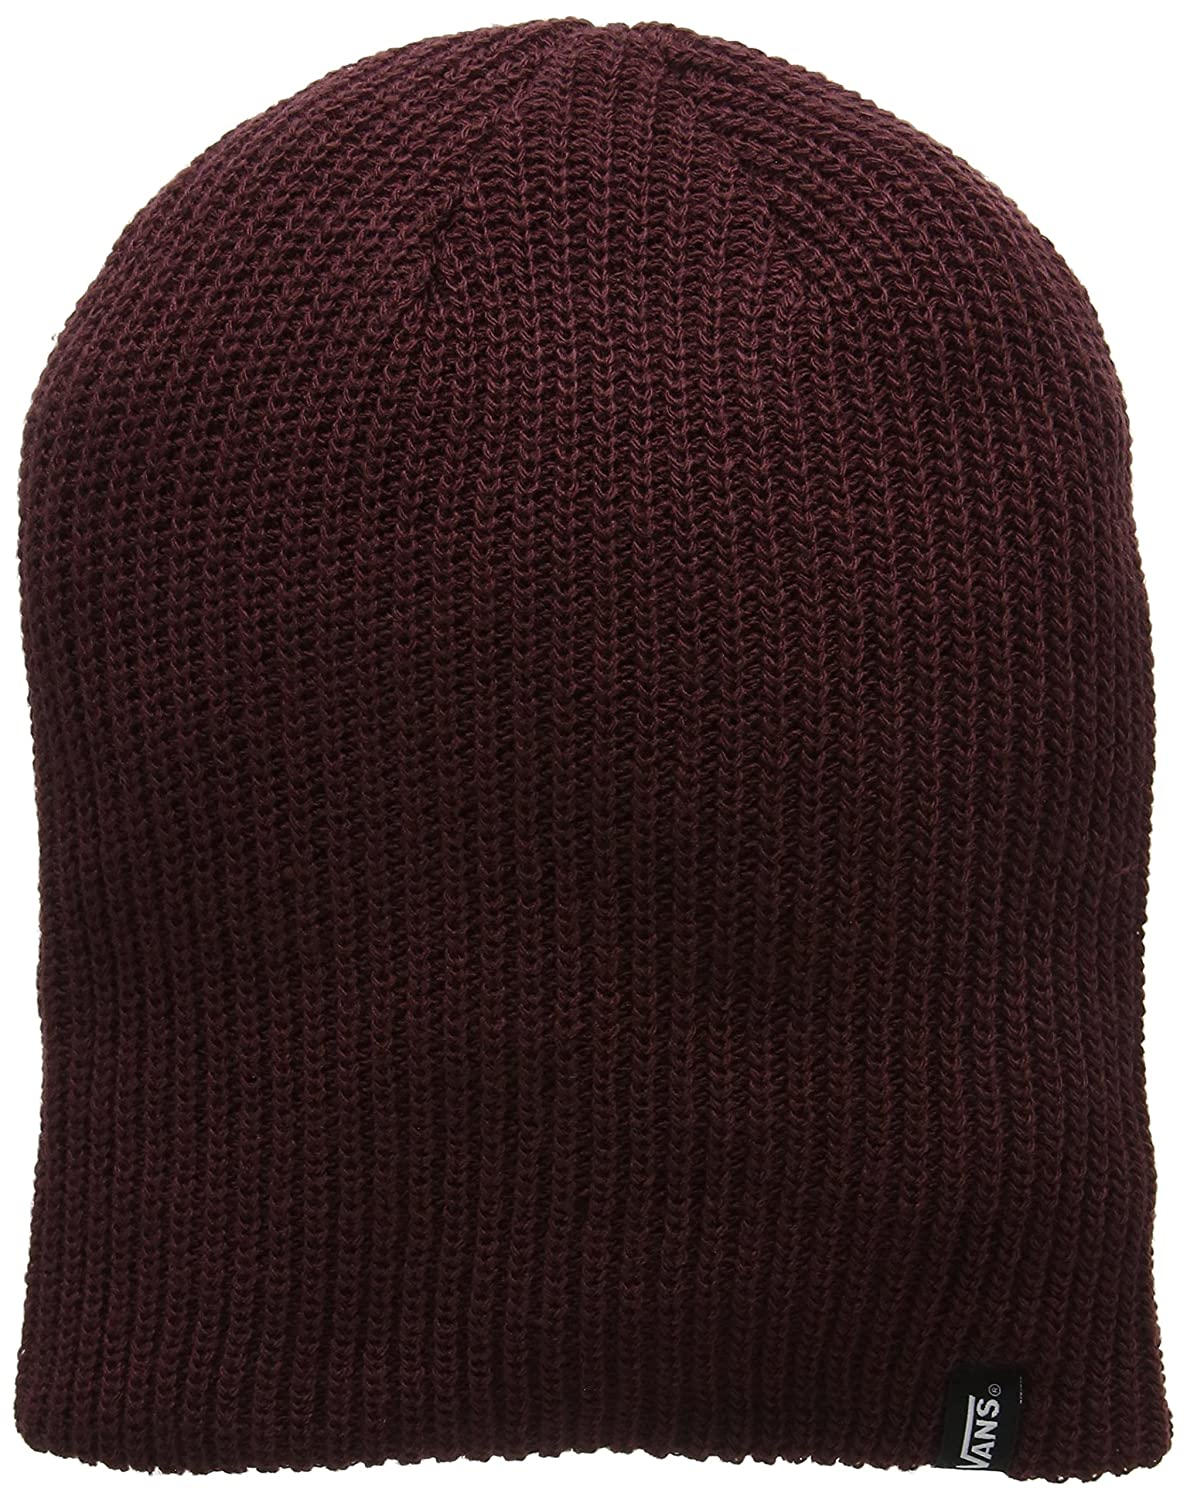 439258a19 Vans Off The Wall Mismoedig Slouch Beanie